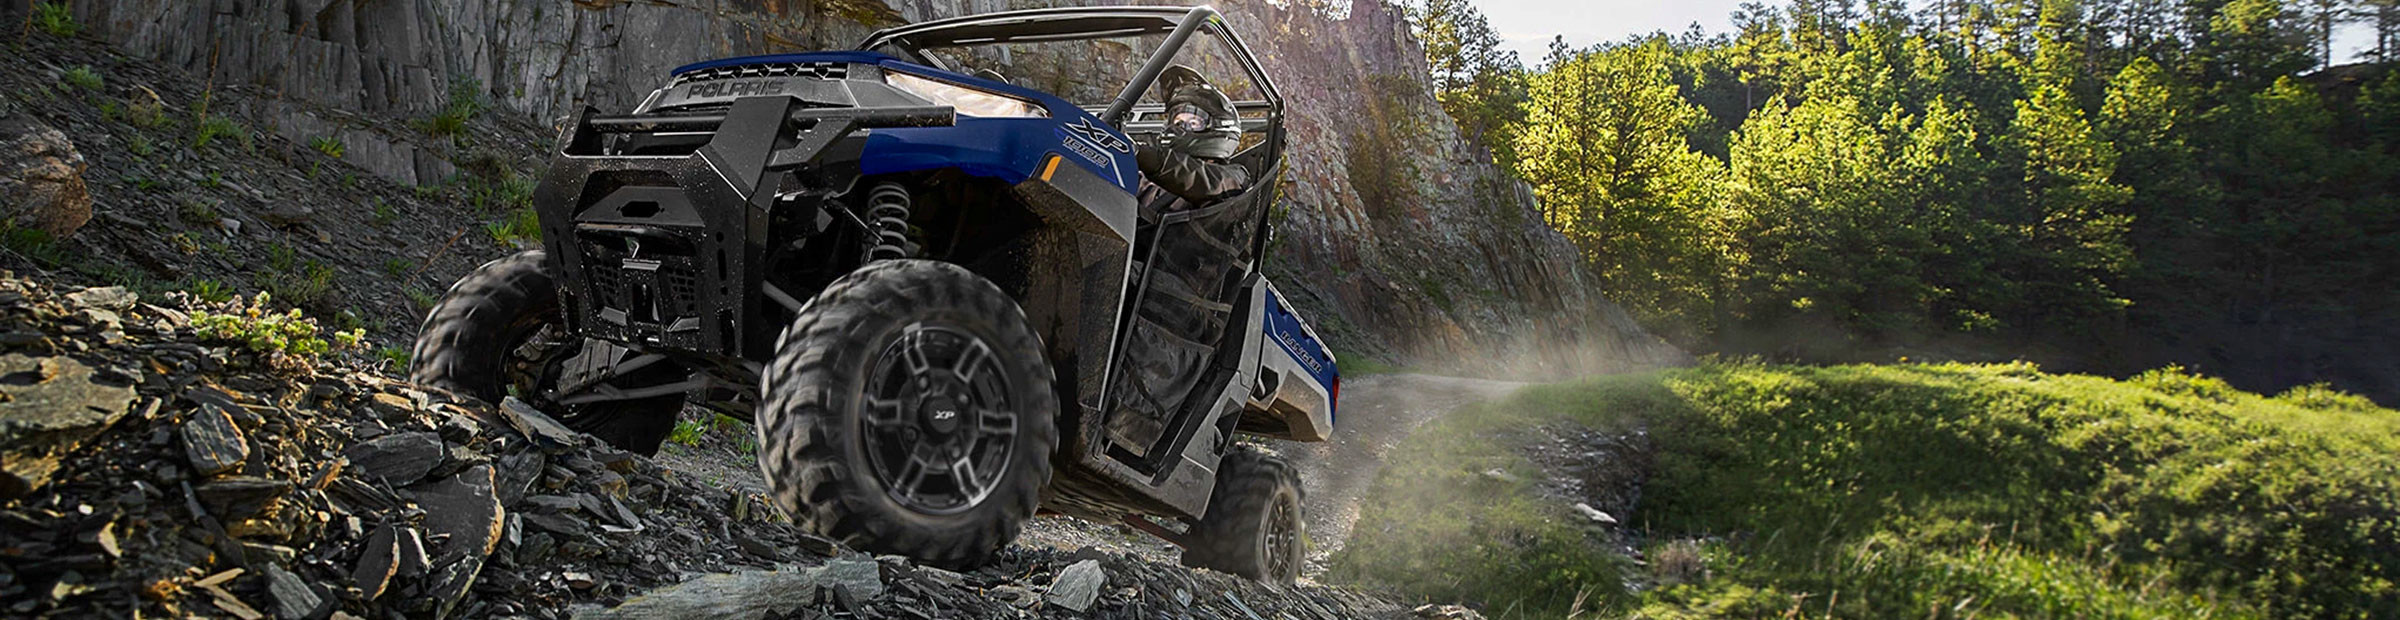 2021 Polaris RANGER Collection